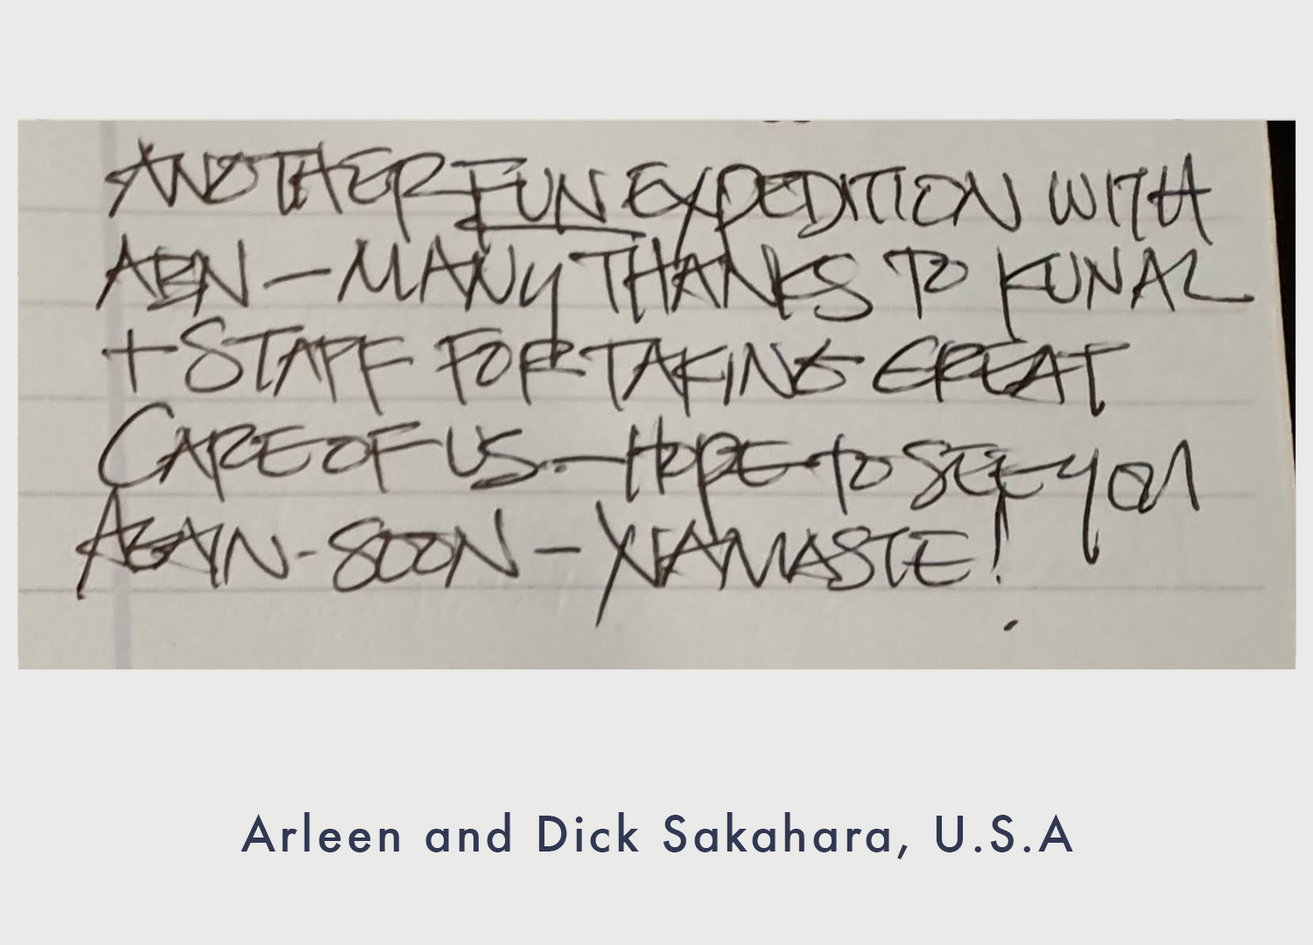 arleen and dick sakahara.png